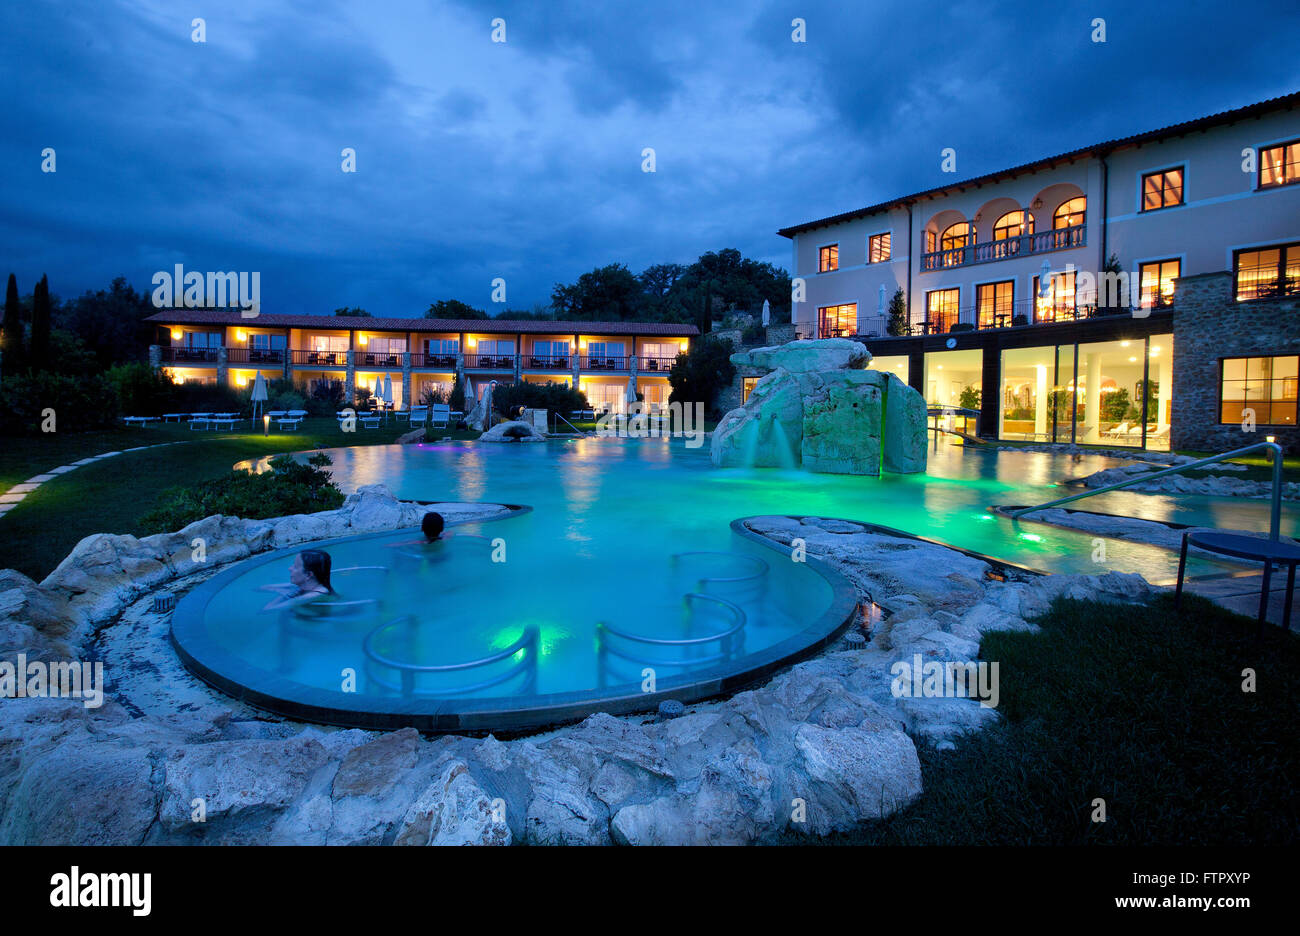 Hotel adler thermae spa relax resort bagno vignoni toscana stock photo royalty free image - Bagno vignoni spa ...